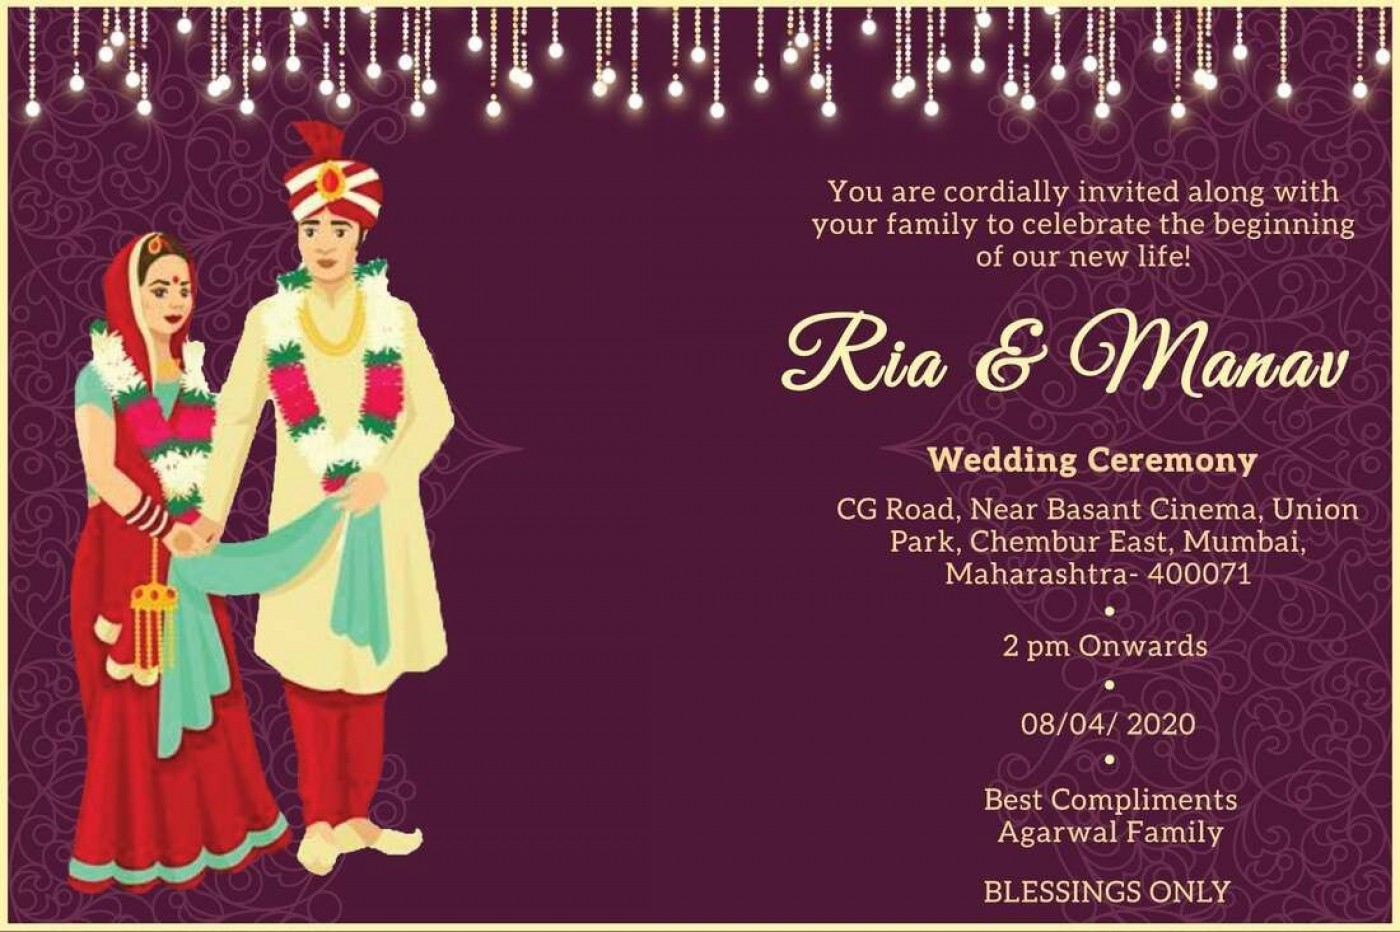 009 Remarkable Free Online Indian Wedding Invitation Card Template Idea 1400